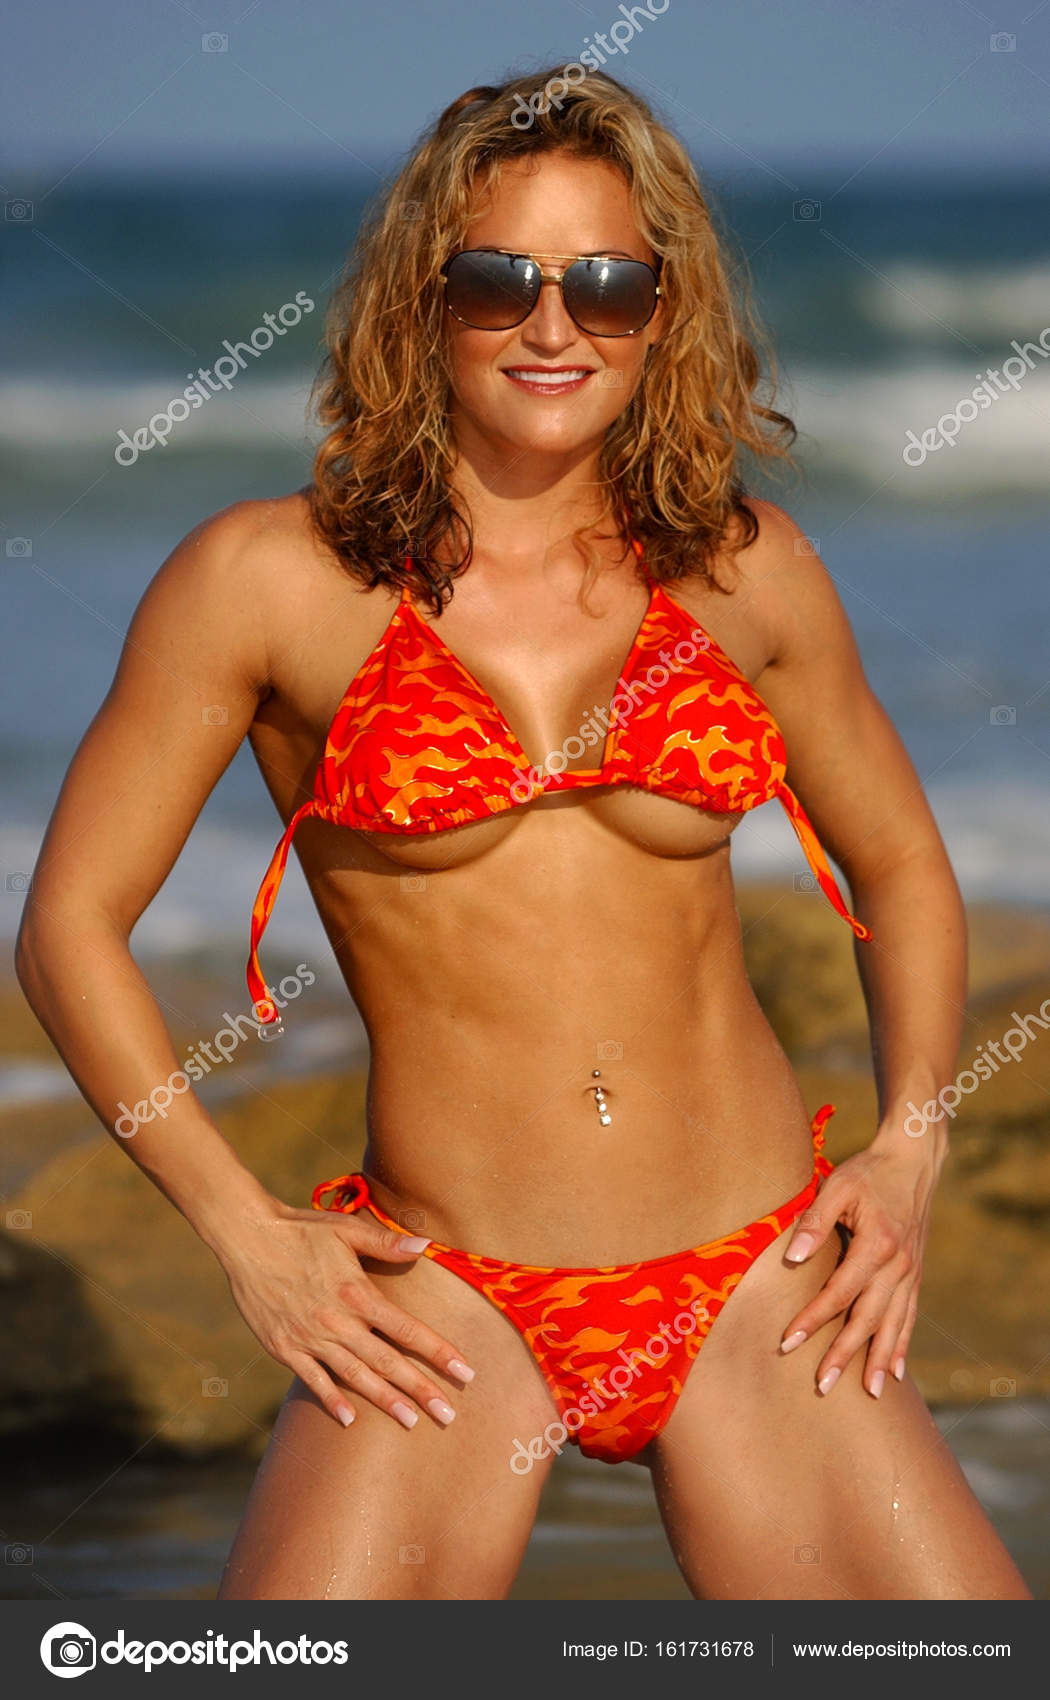 cute untied sting bikini on athletic beach babe — stock photo